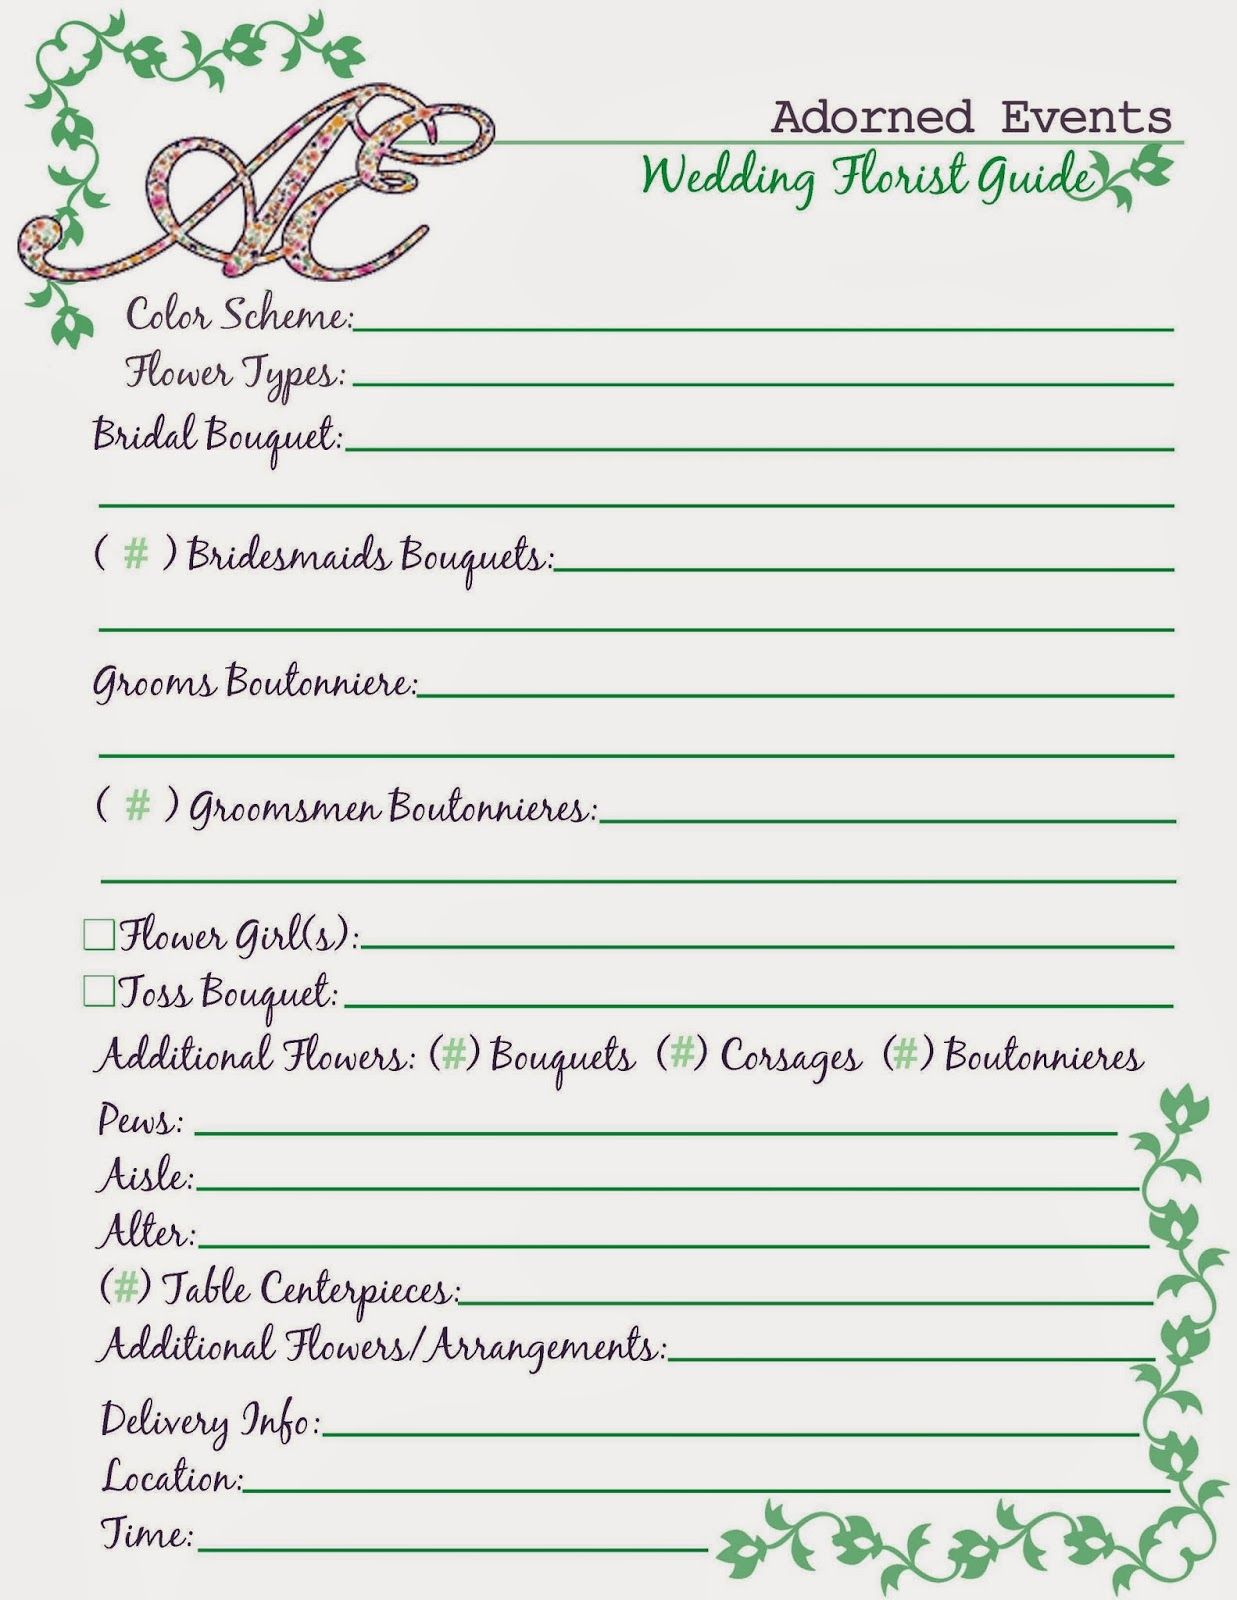 download these helpful wedding planning printouts for free